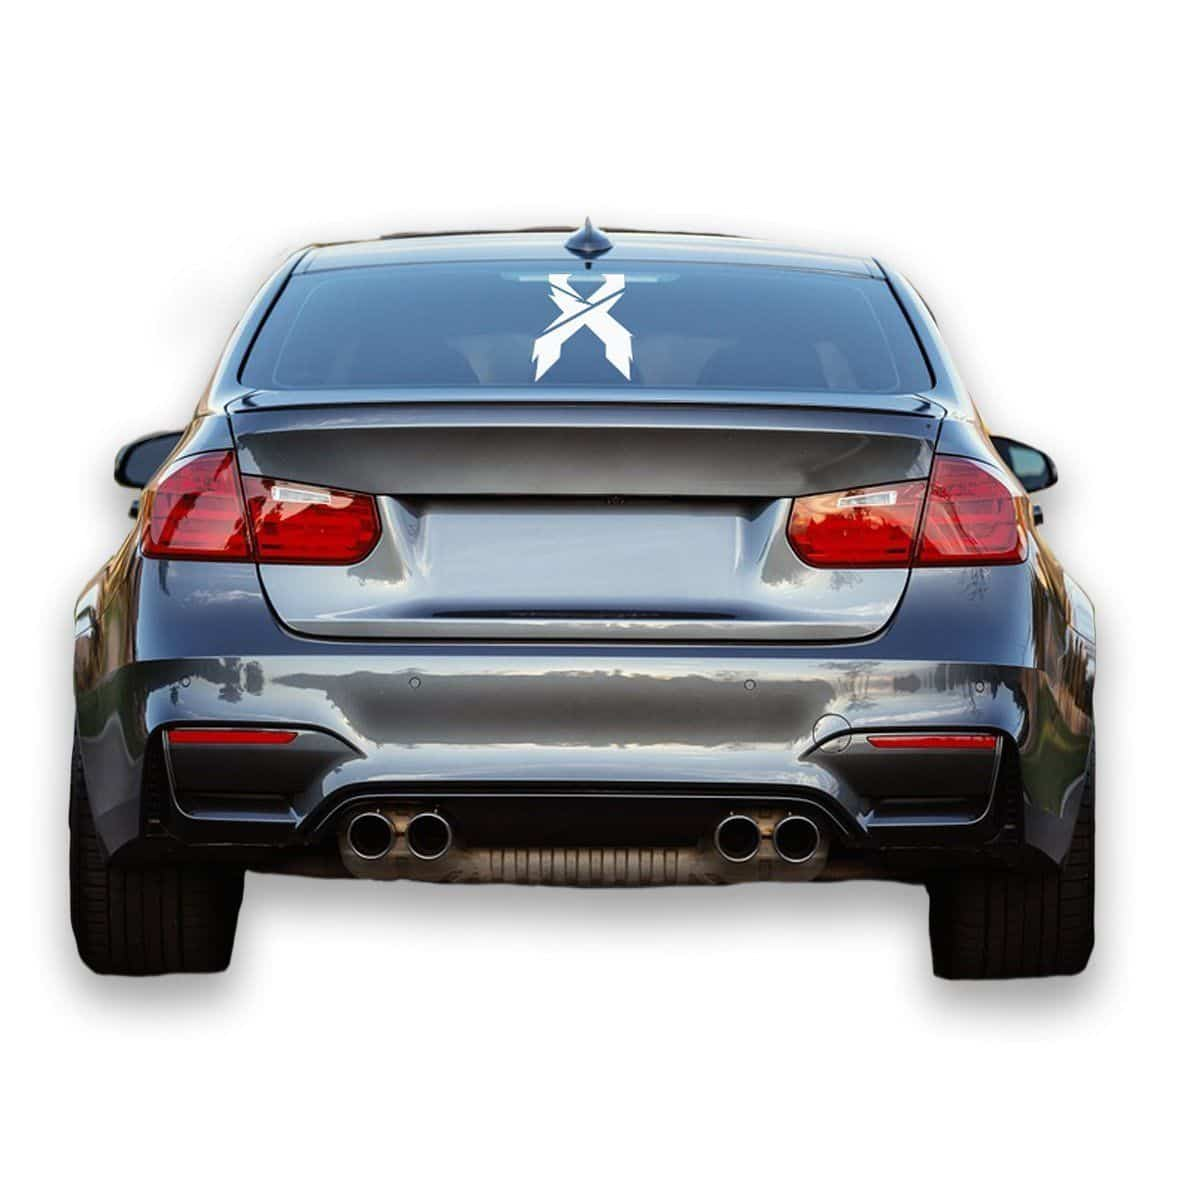 Excision 'Sliced'  Symbol Vinyl Decal